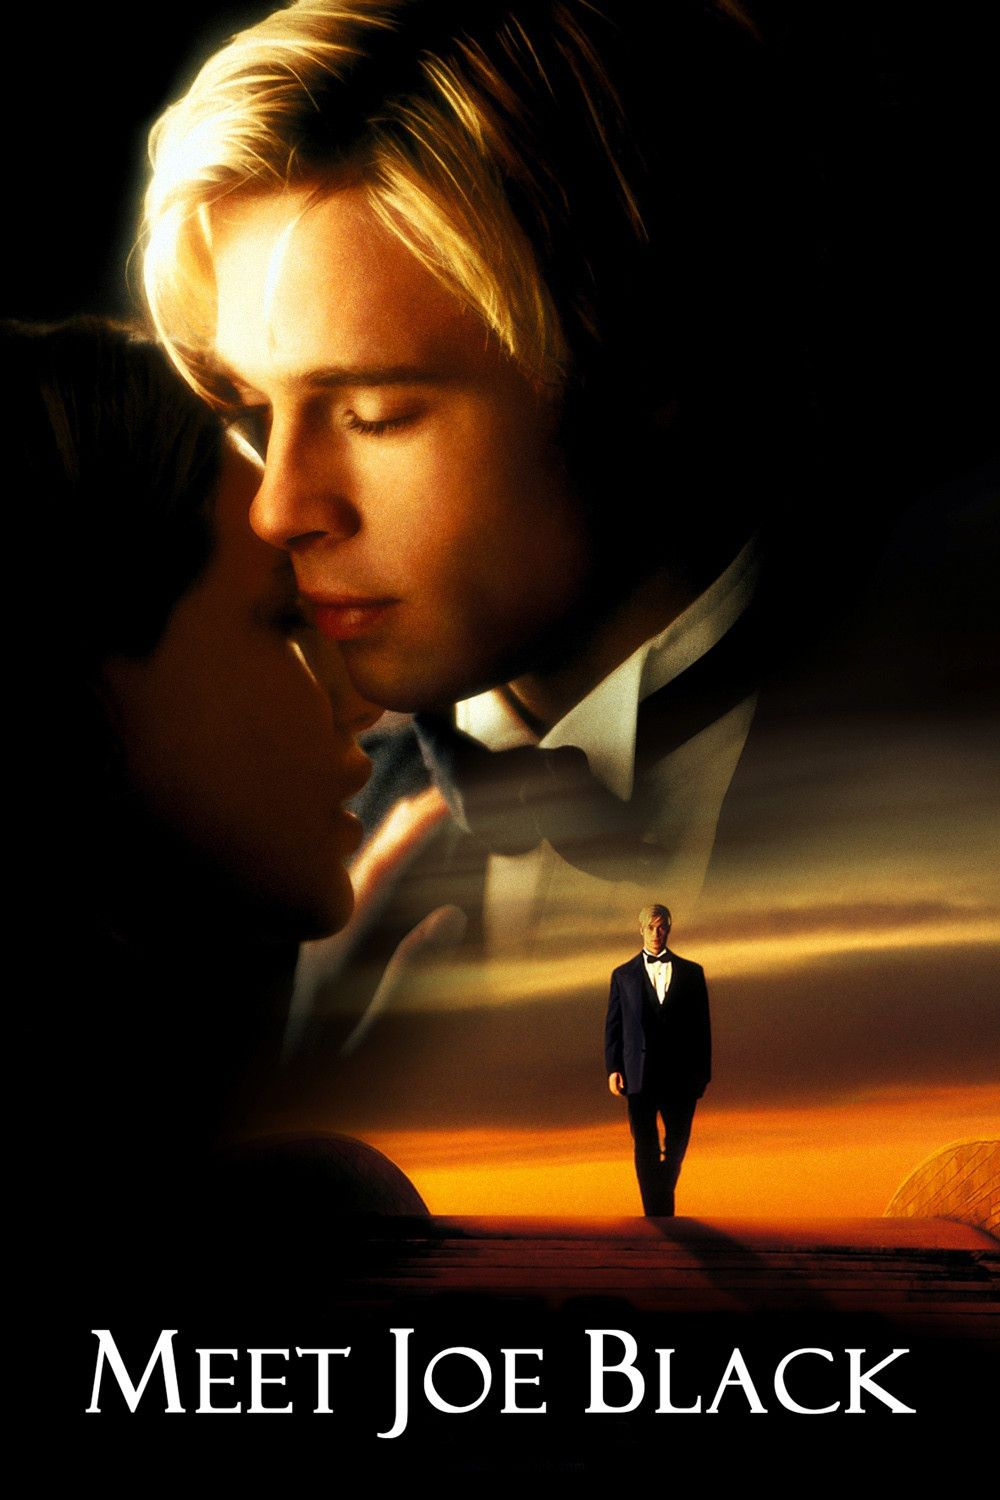 Telecharger rencontre avec joe black vf